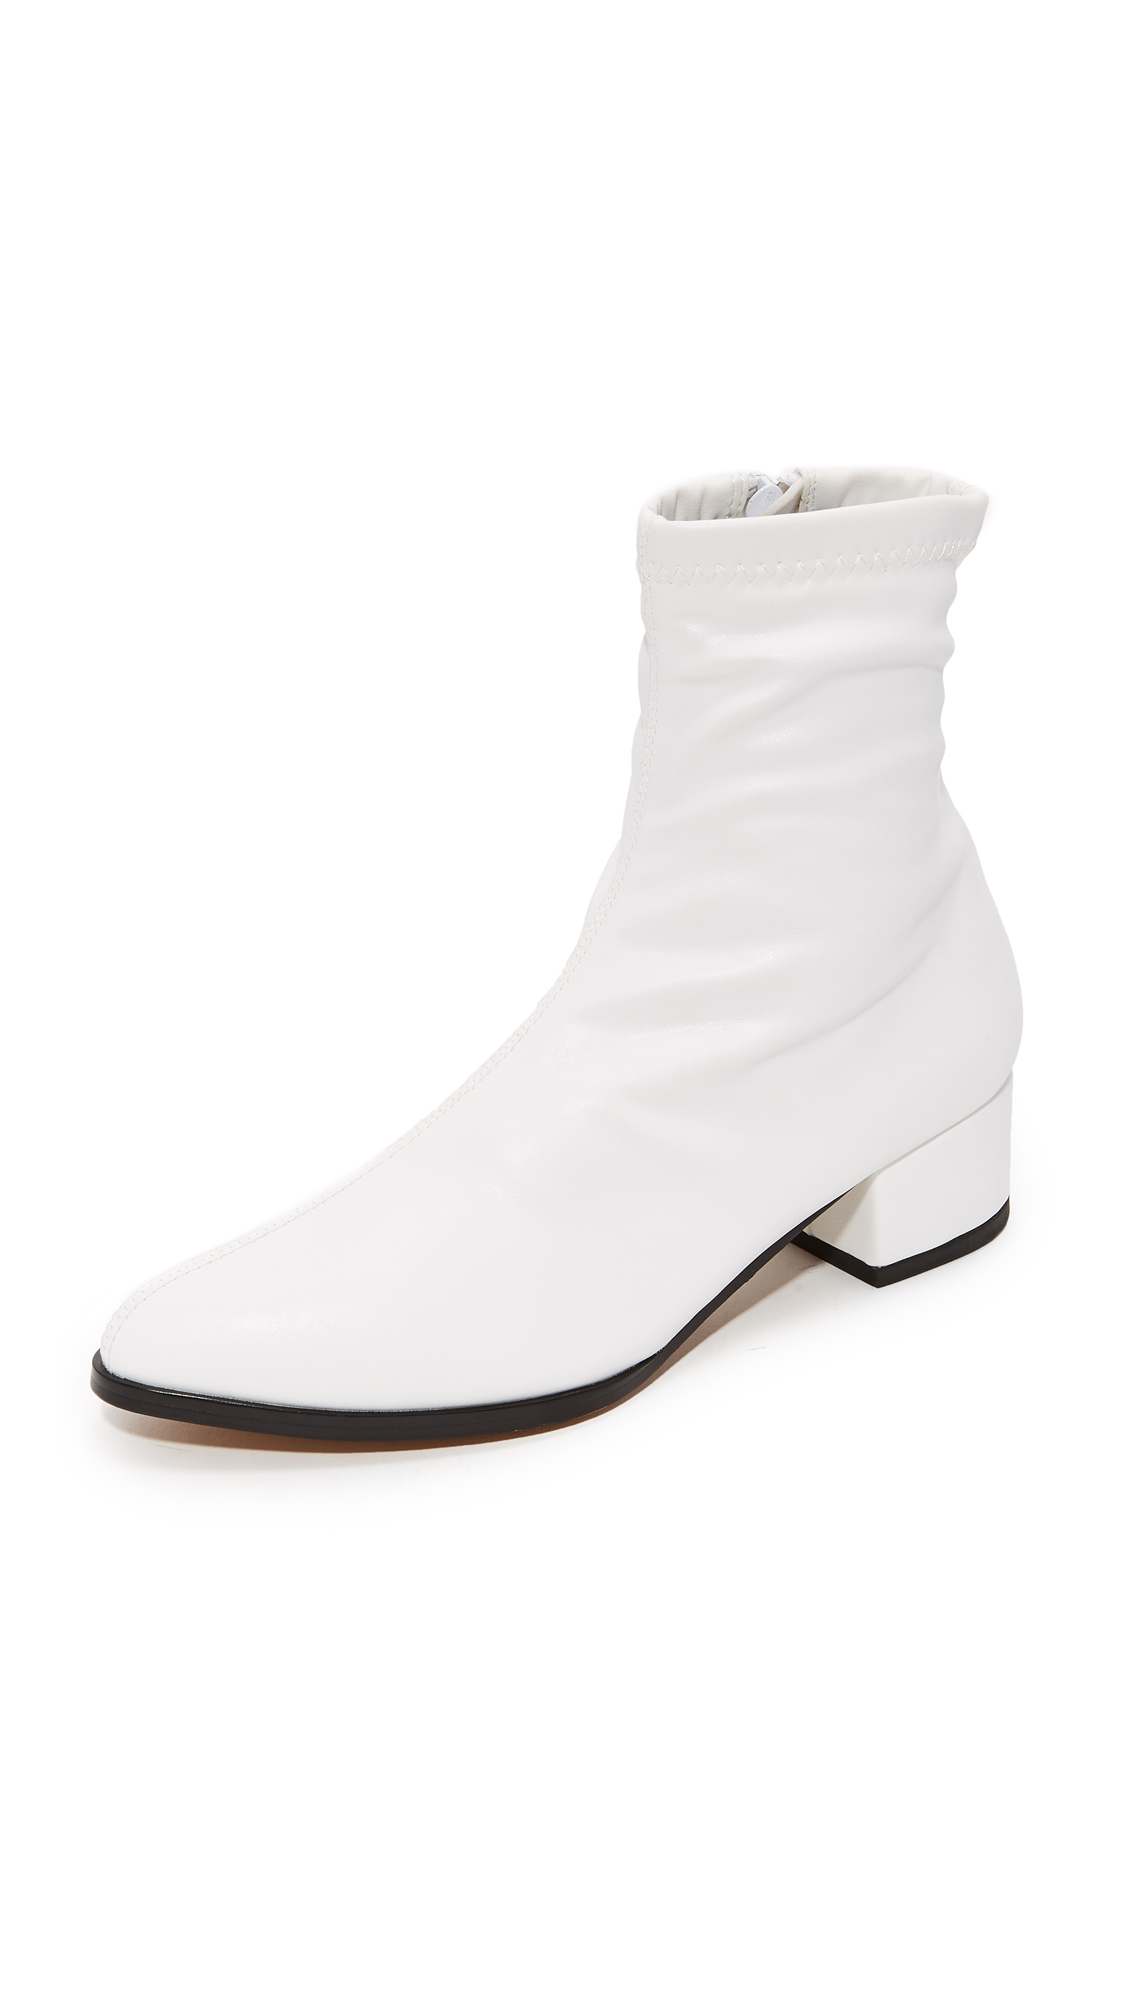 Matiko Jeanne Ankle Boots - White